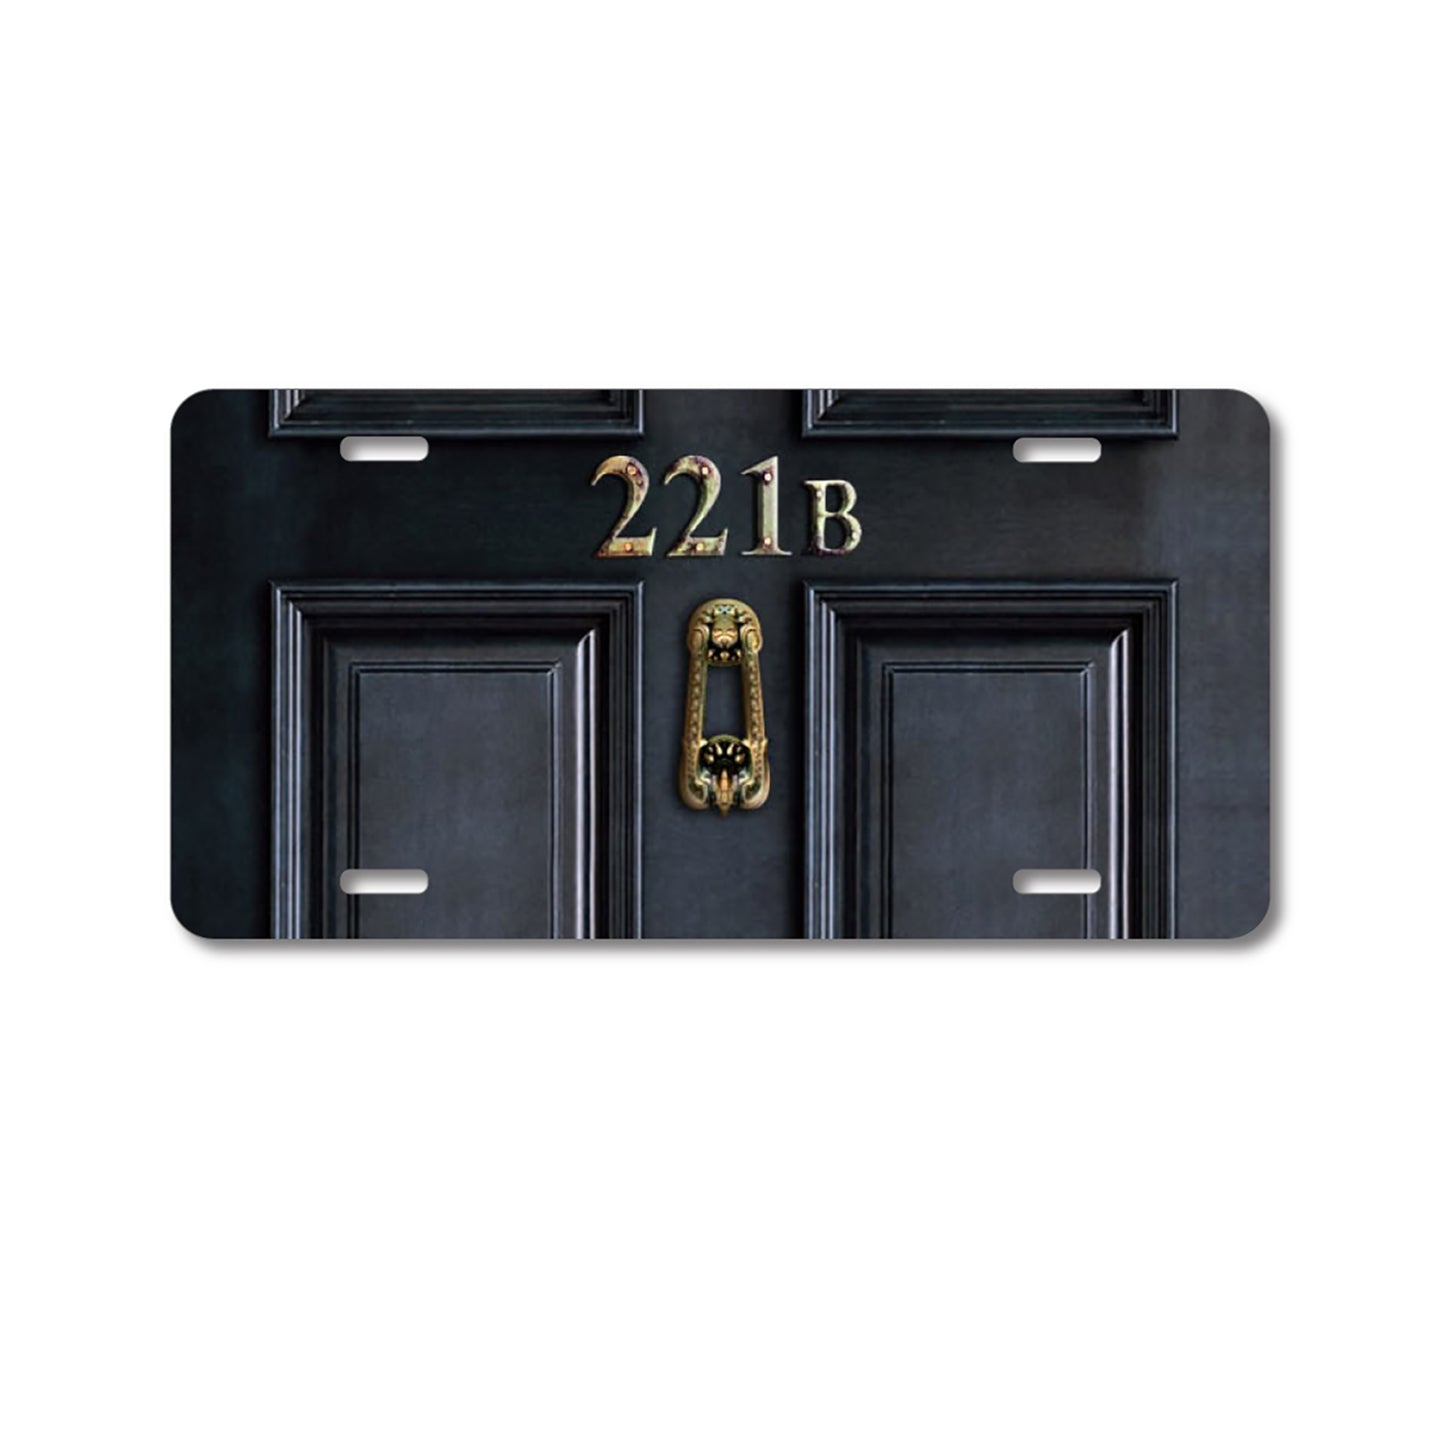 DistinctInk Custom Aluminum Decorative Vanity Front License Plate - 221b Baker Street